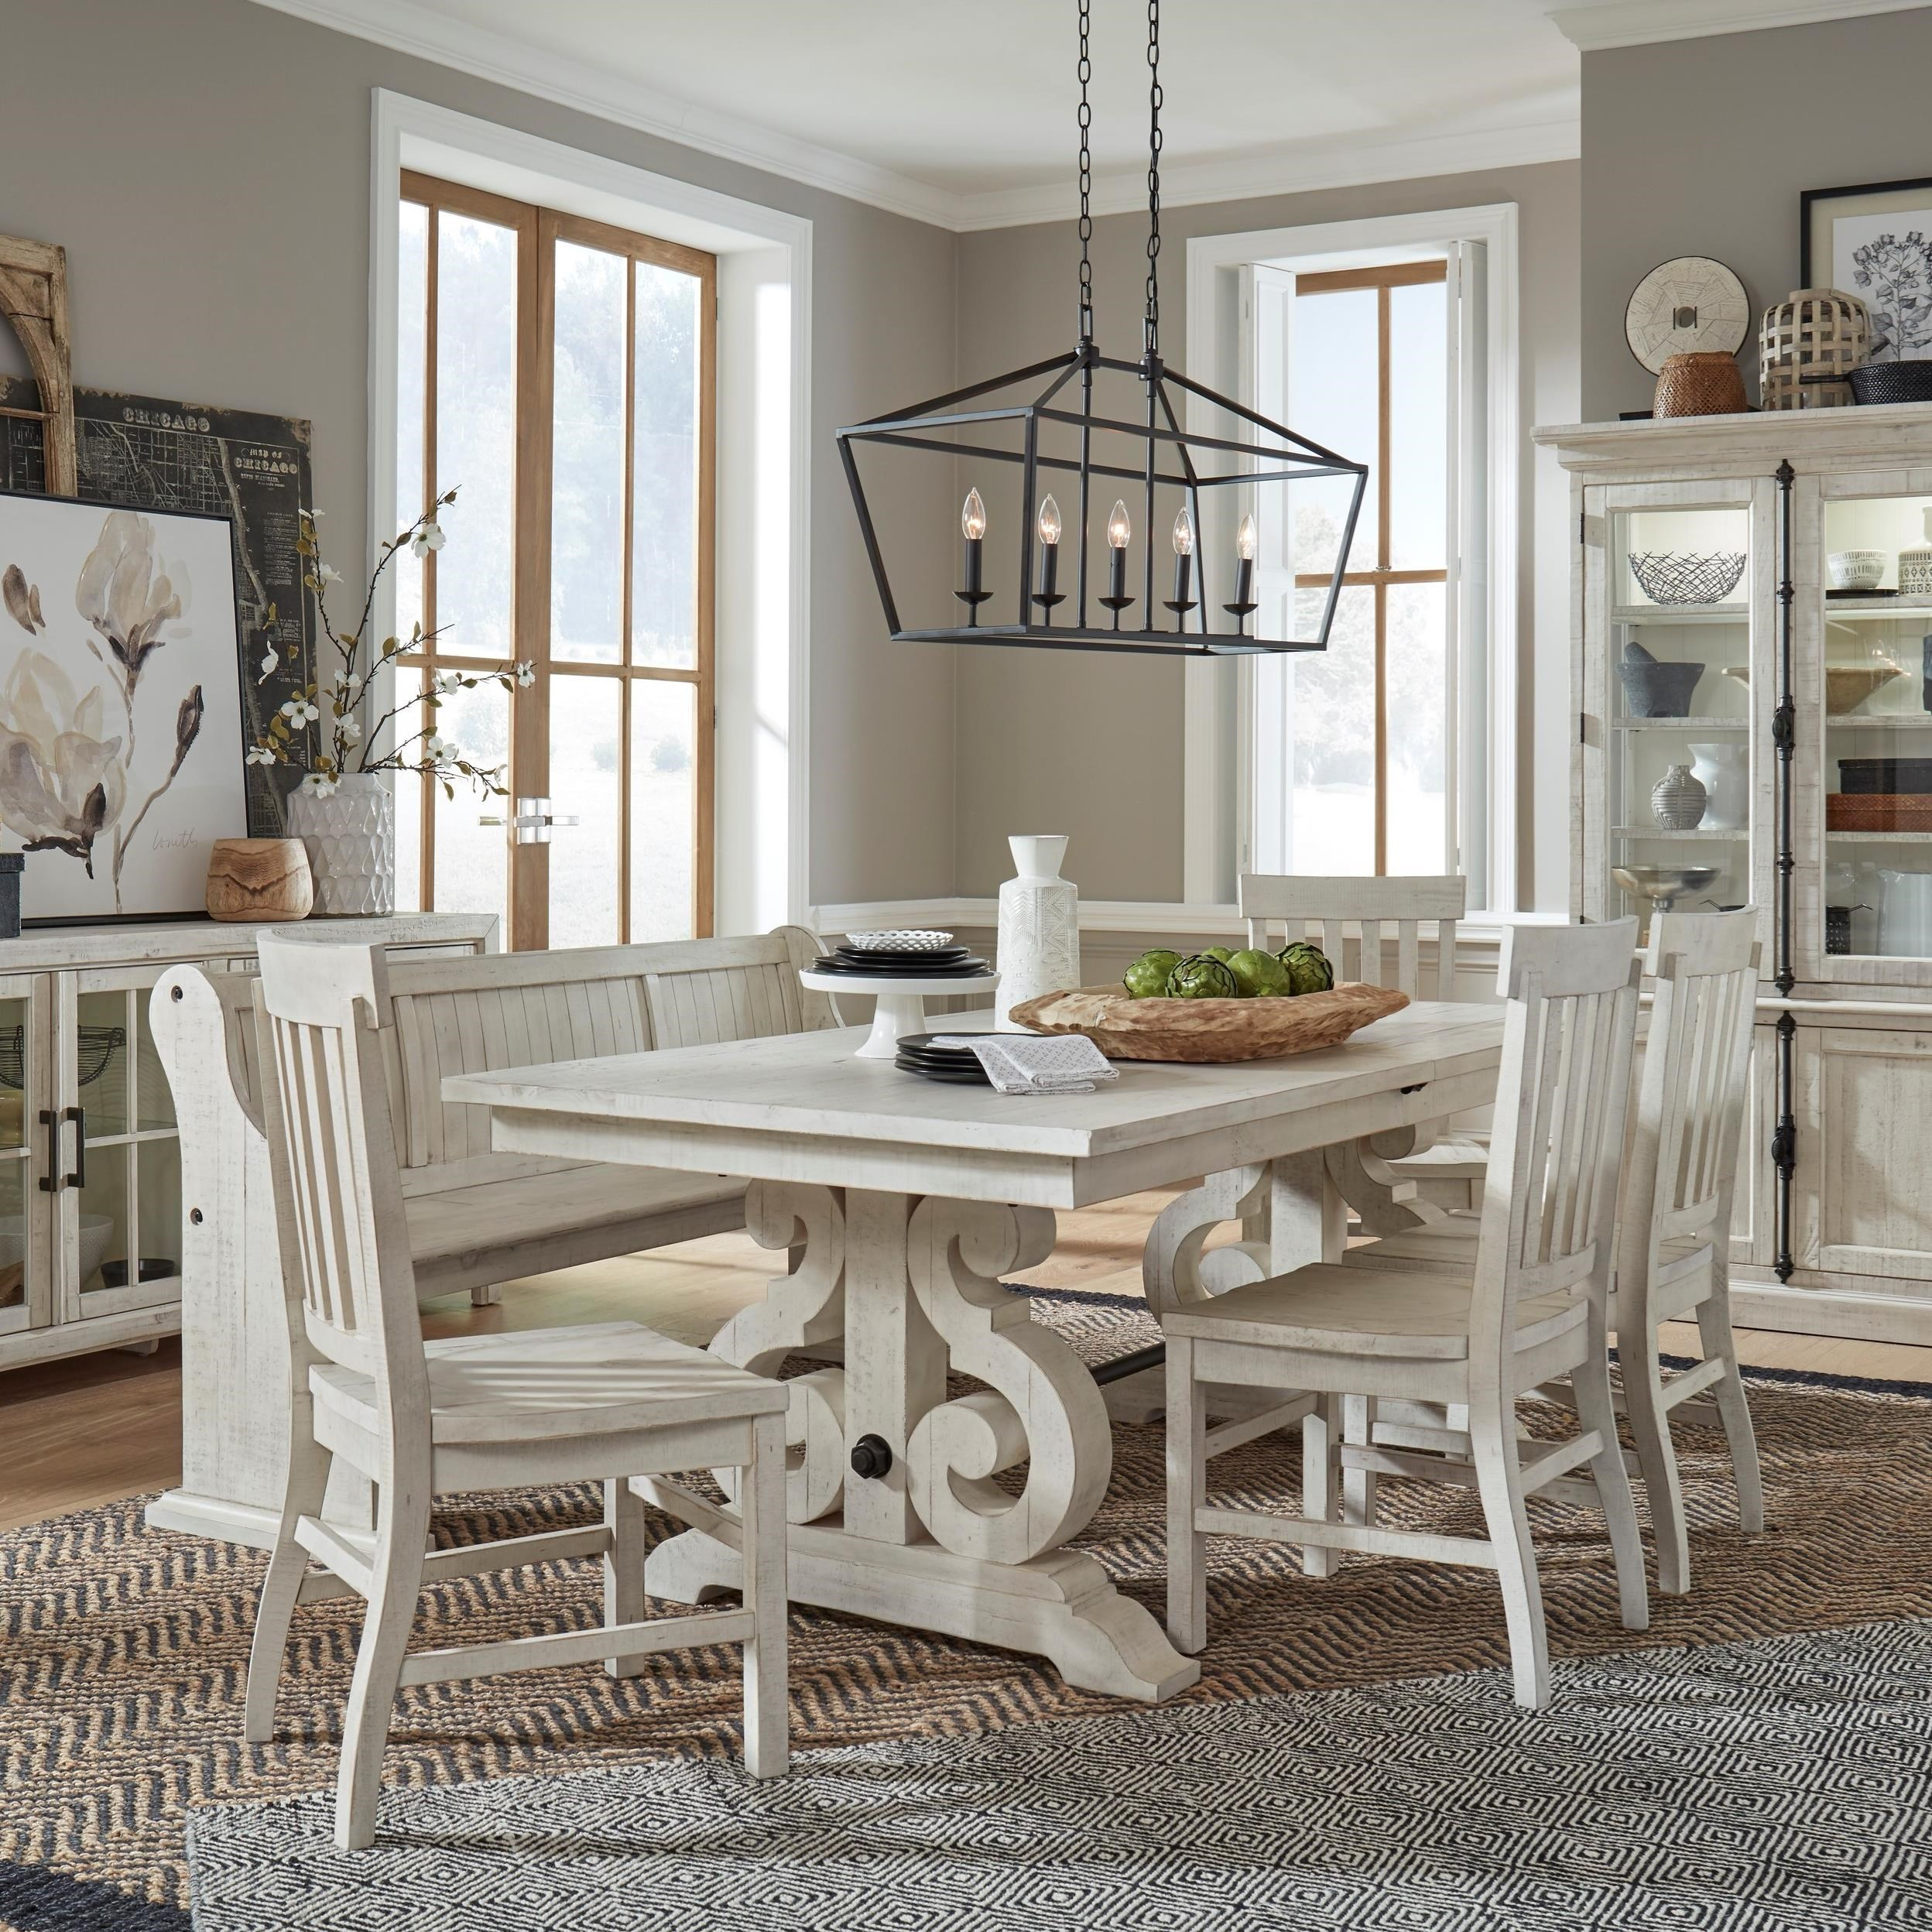 Bronwyn 6-Piece Dining Table Set with Bench by Magnussen Home at Stoney Creek Furniture